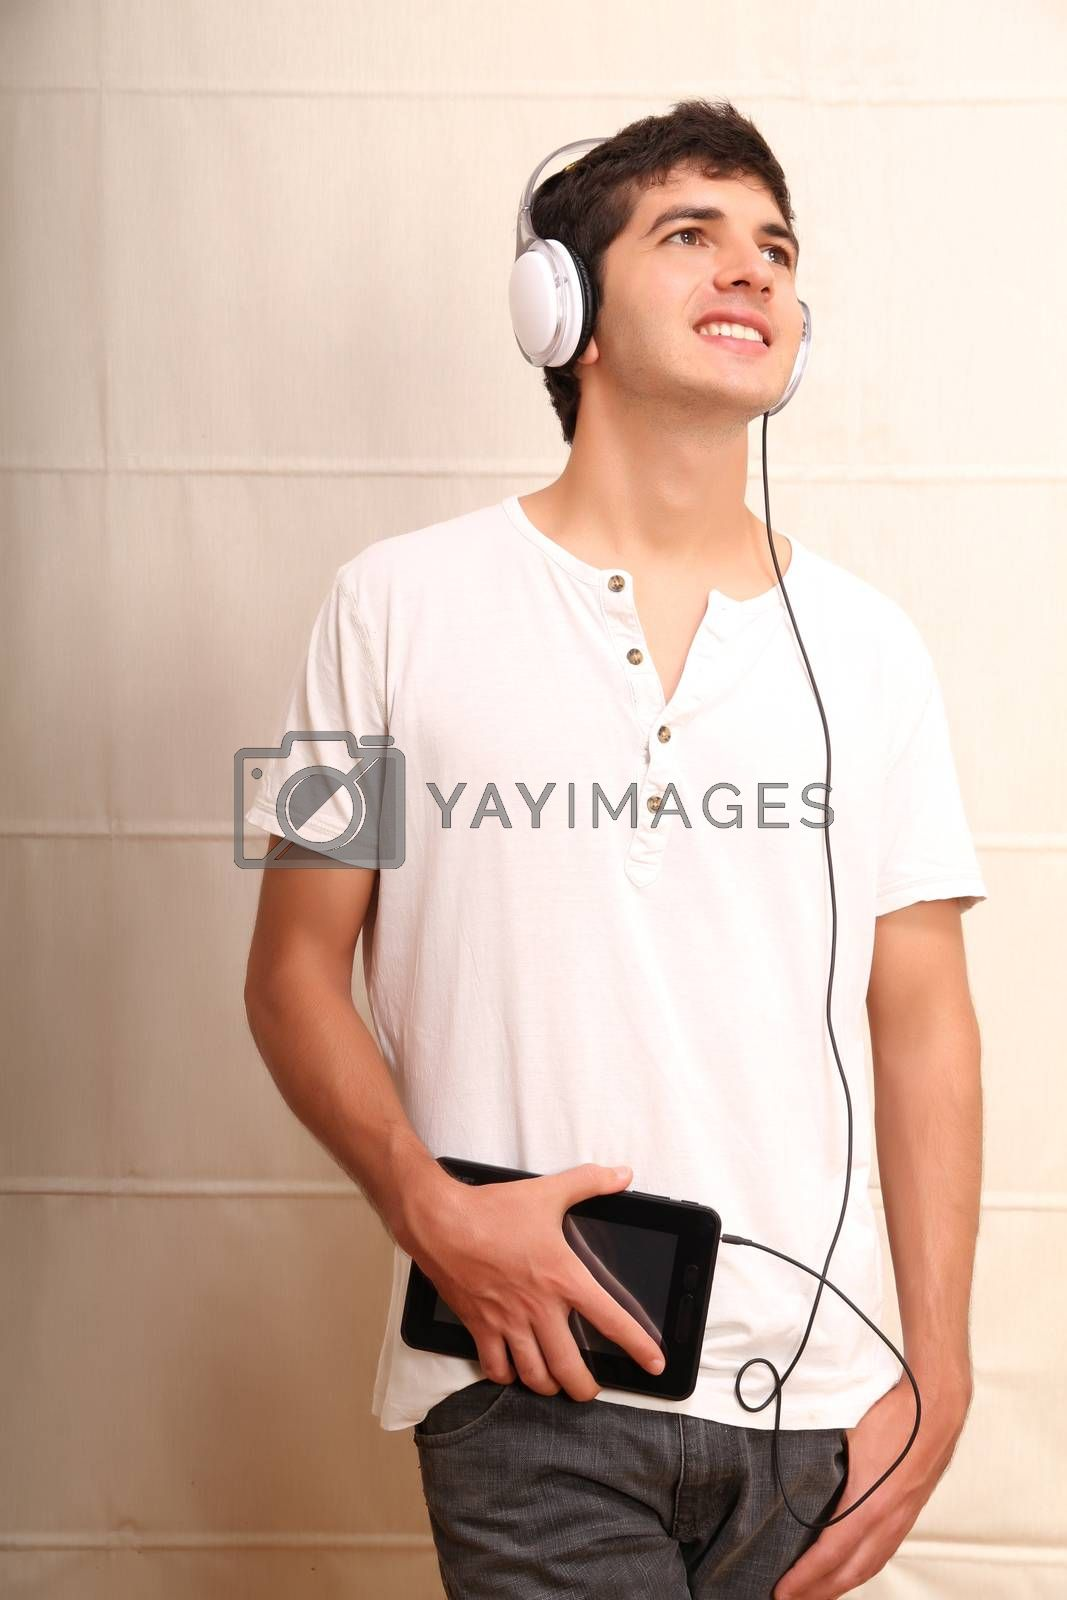 A young, latin man with a Tablet PC and headphones